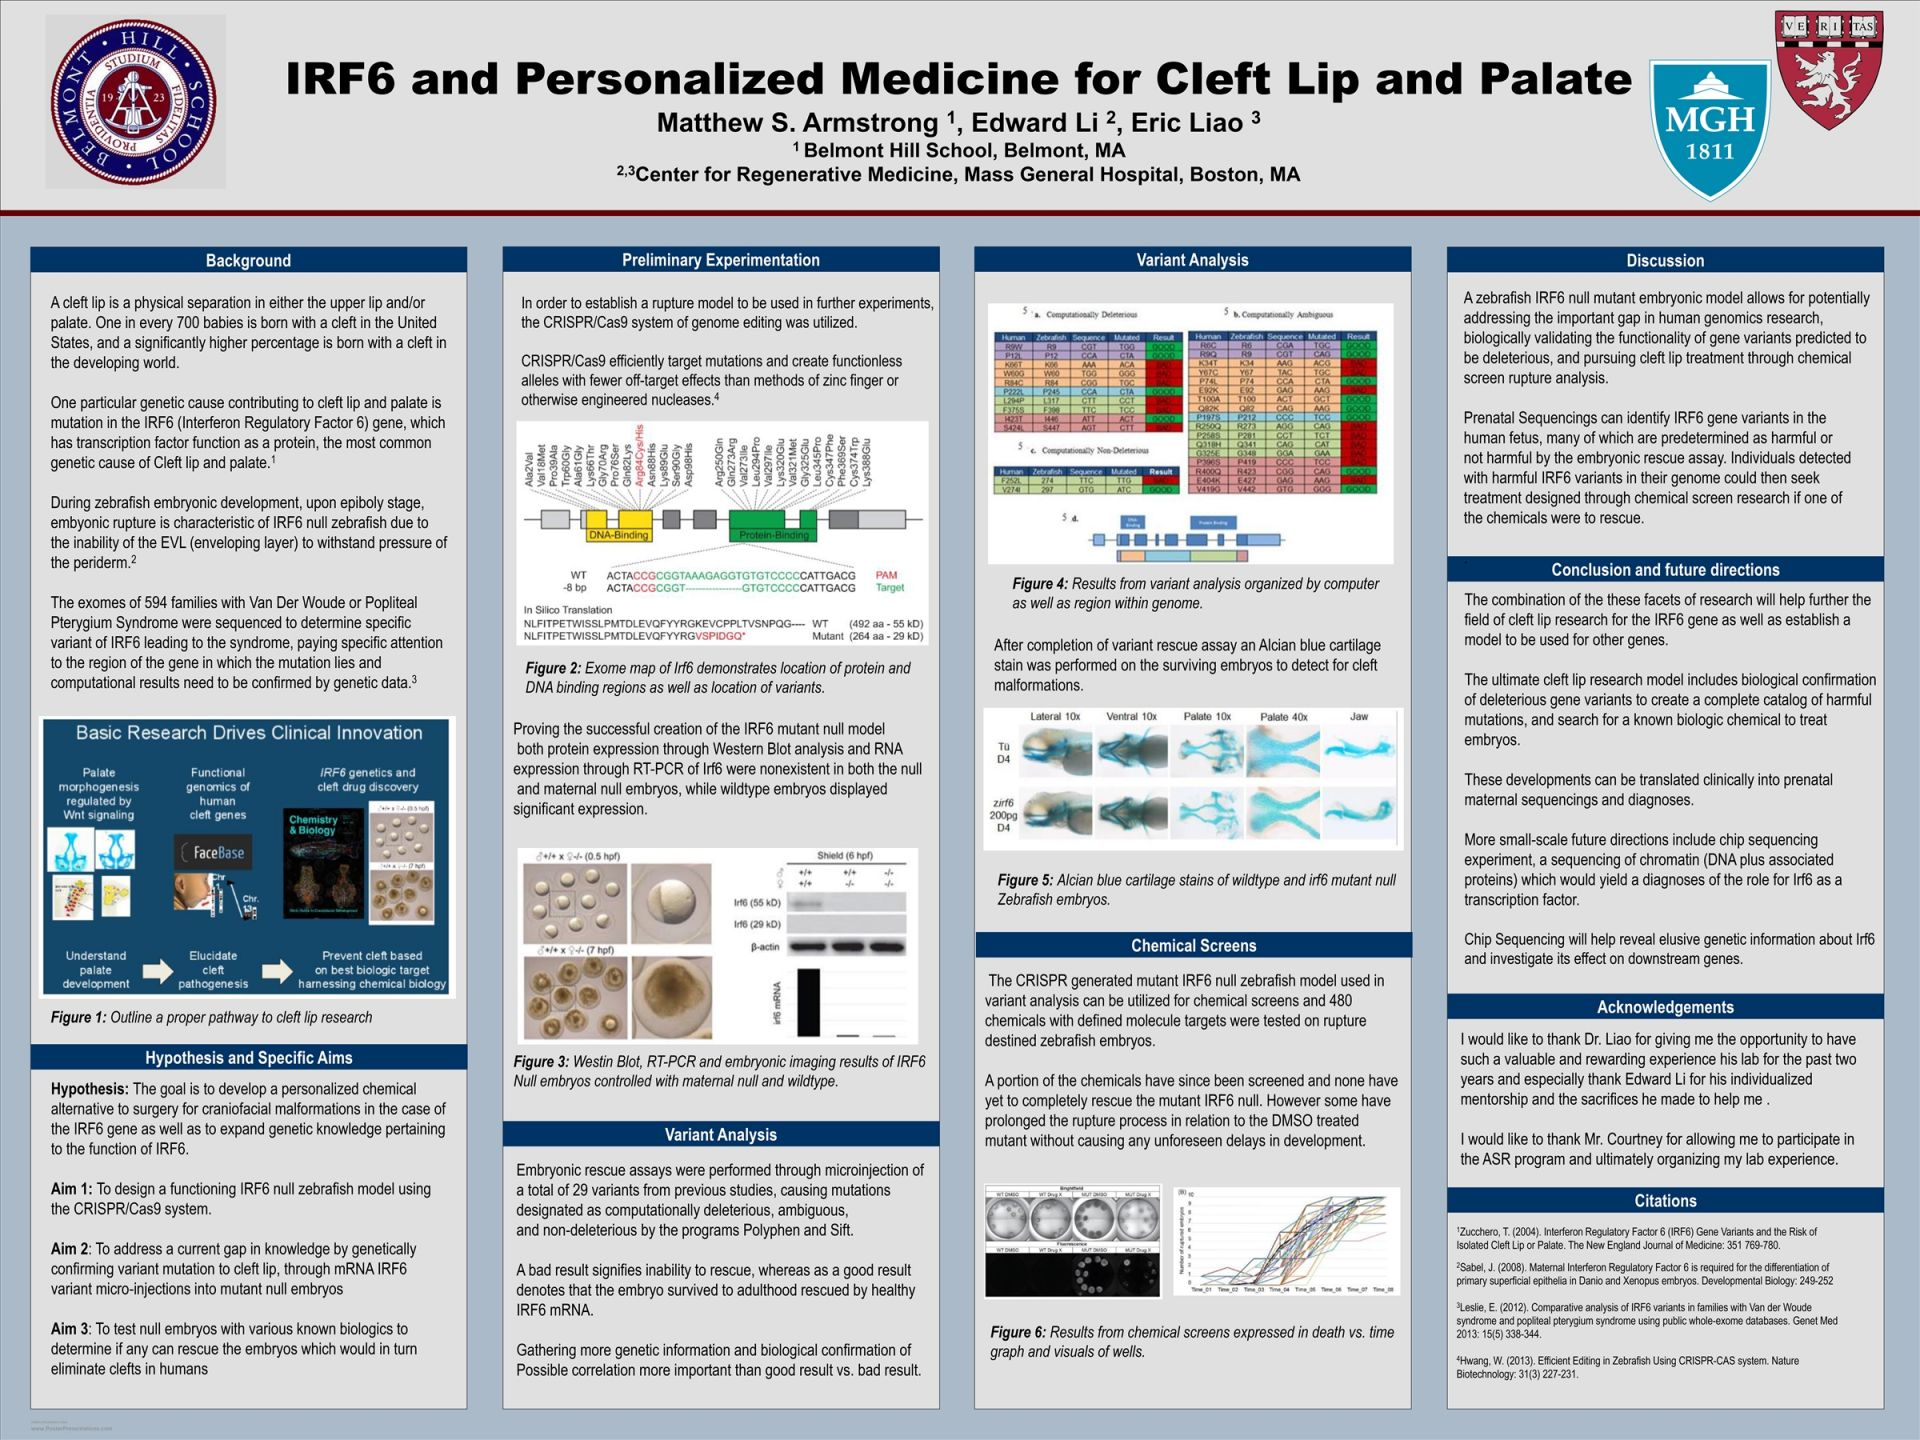 Matthew Armstrong-IRF6 and Personalized Medicine for Cleft Lip and Palate